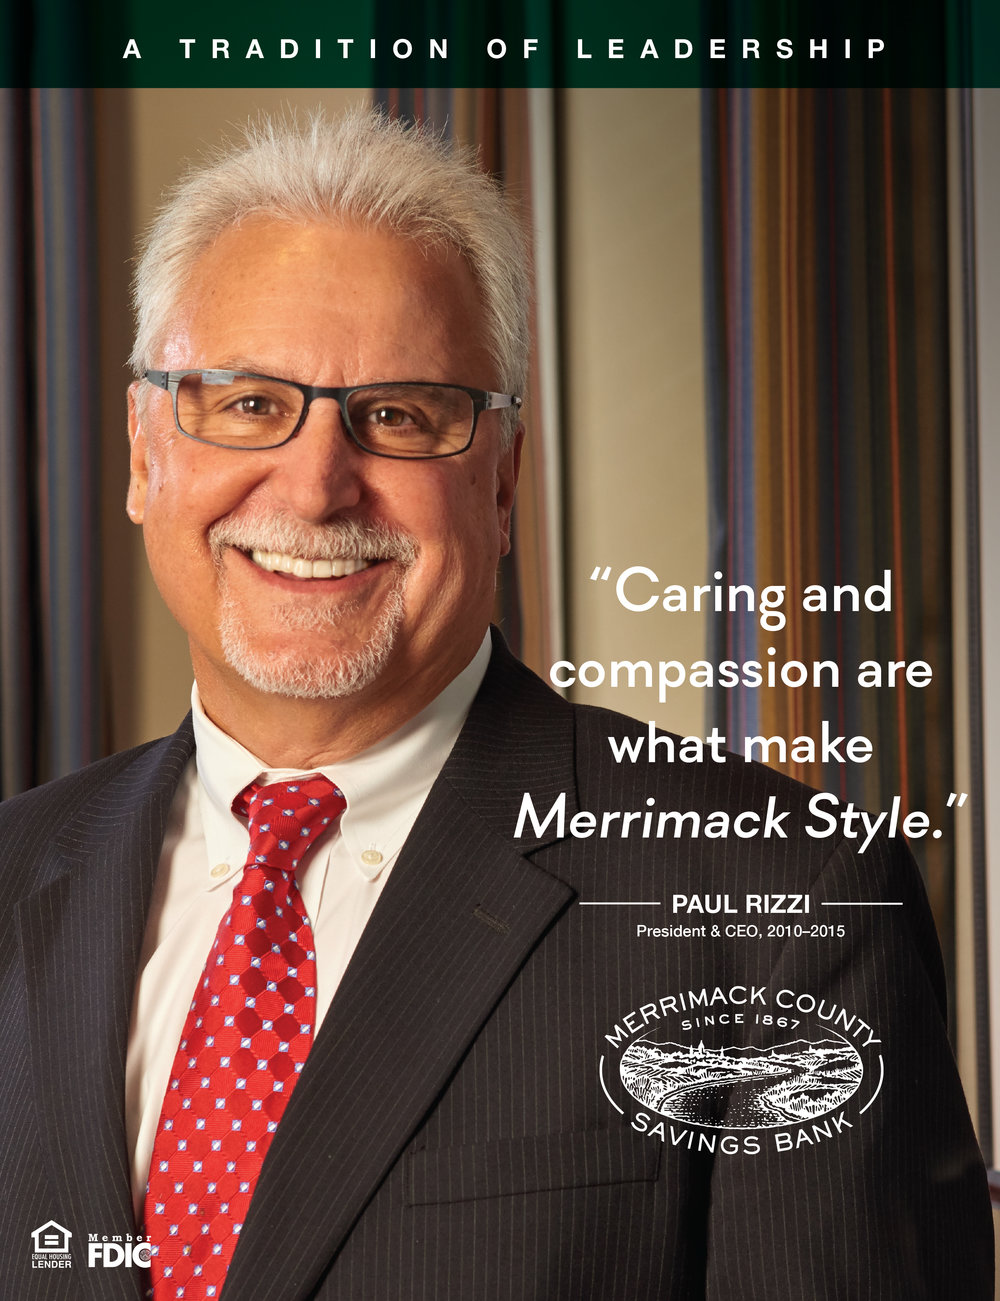 Merrimack County Savings Bank - Leadership Ad